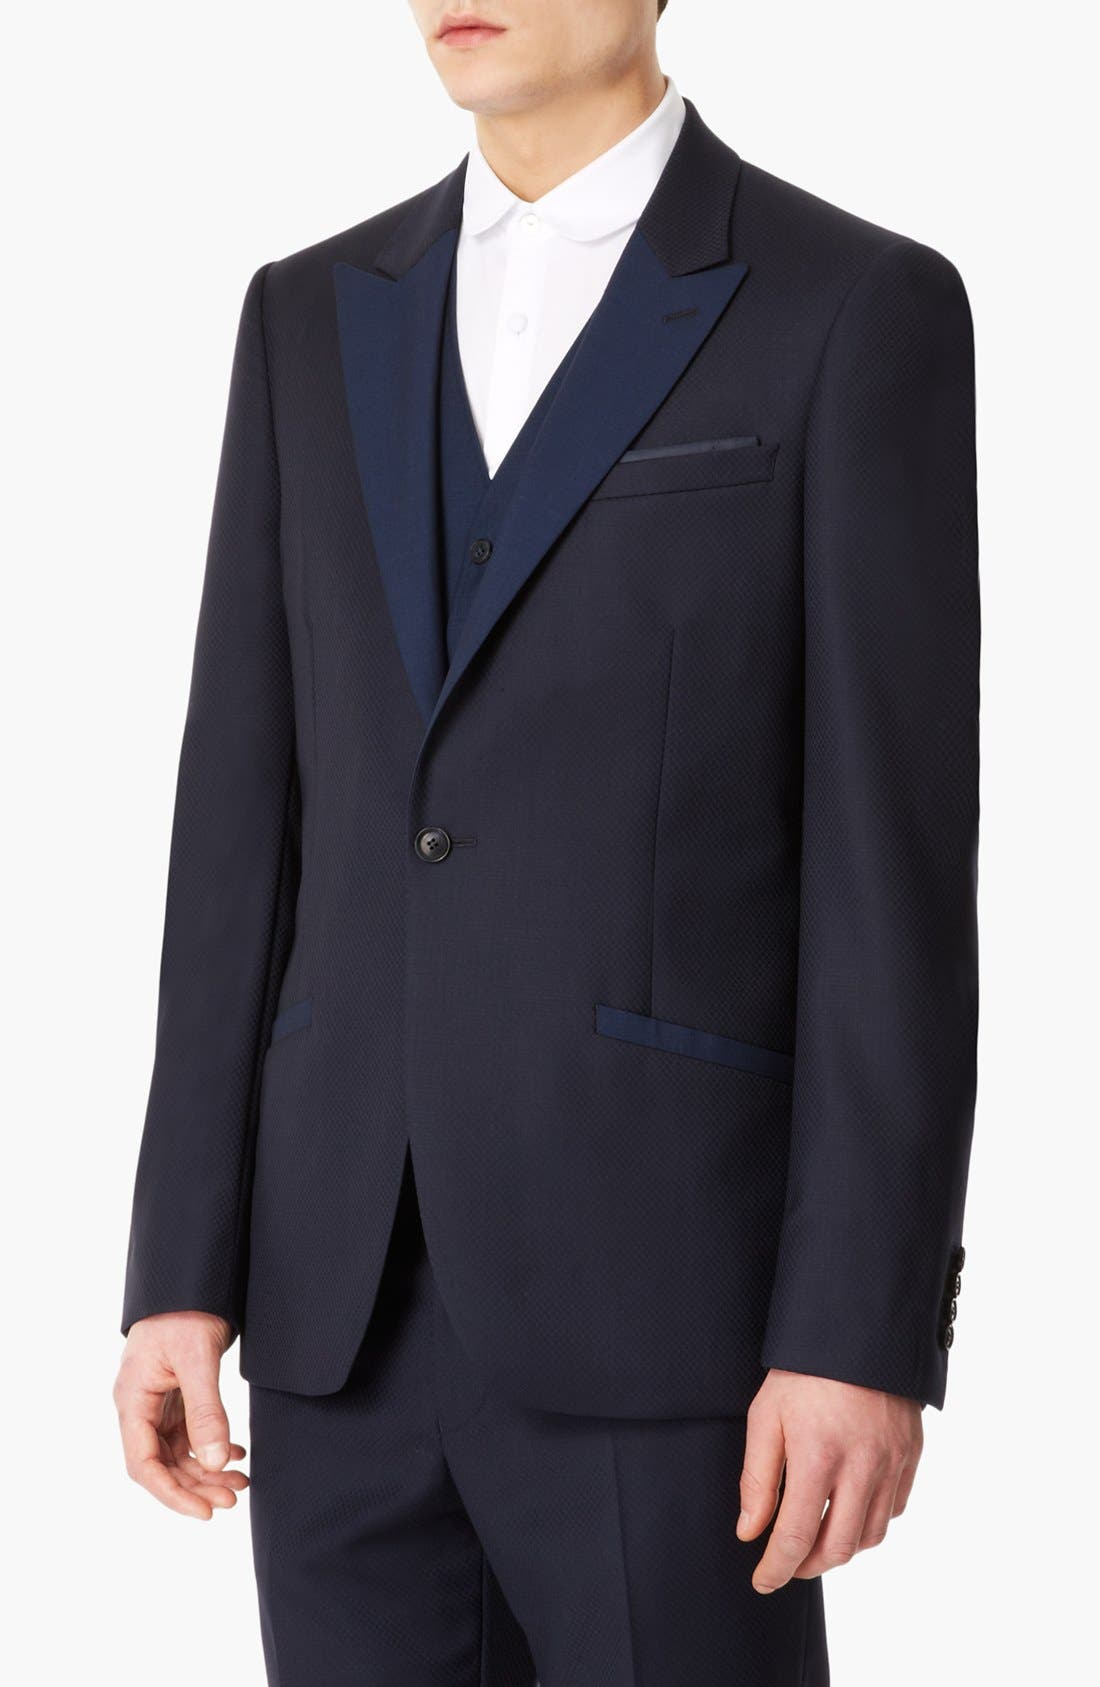 Main Image - Topman 'Lux Collection' Slim Fit Navy Wool One Button Blazer